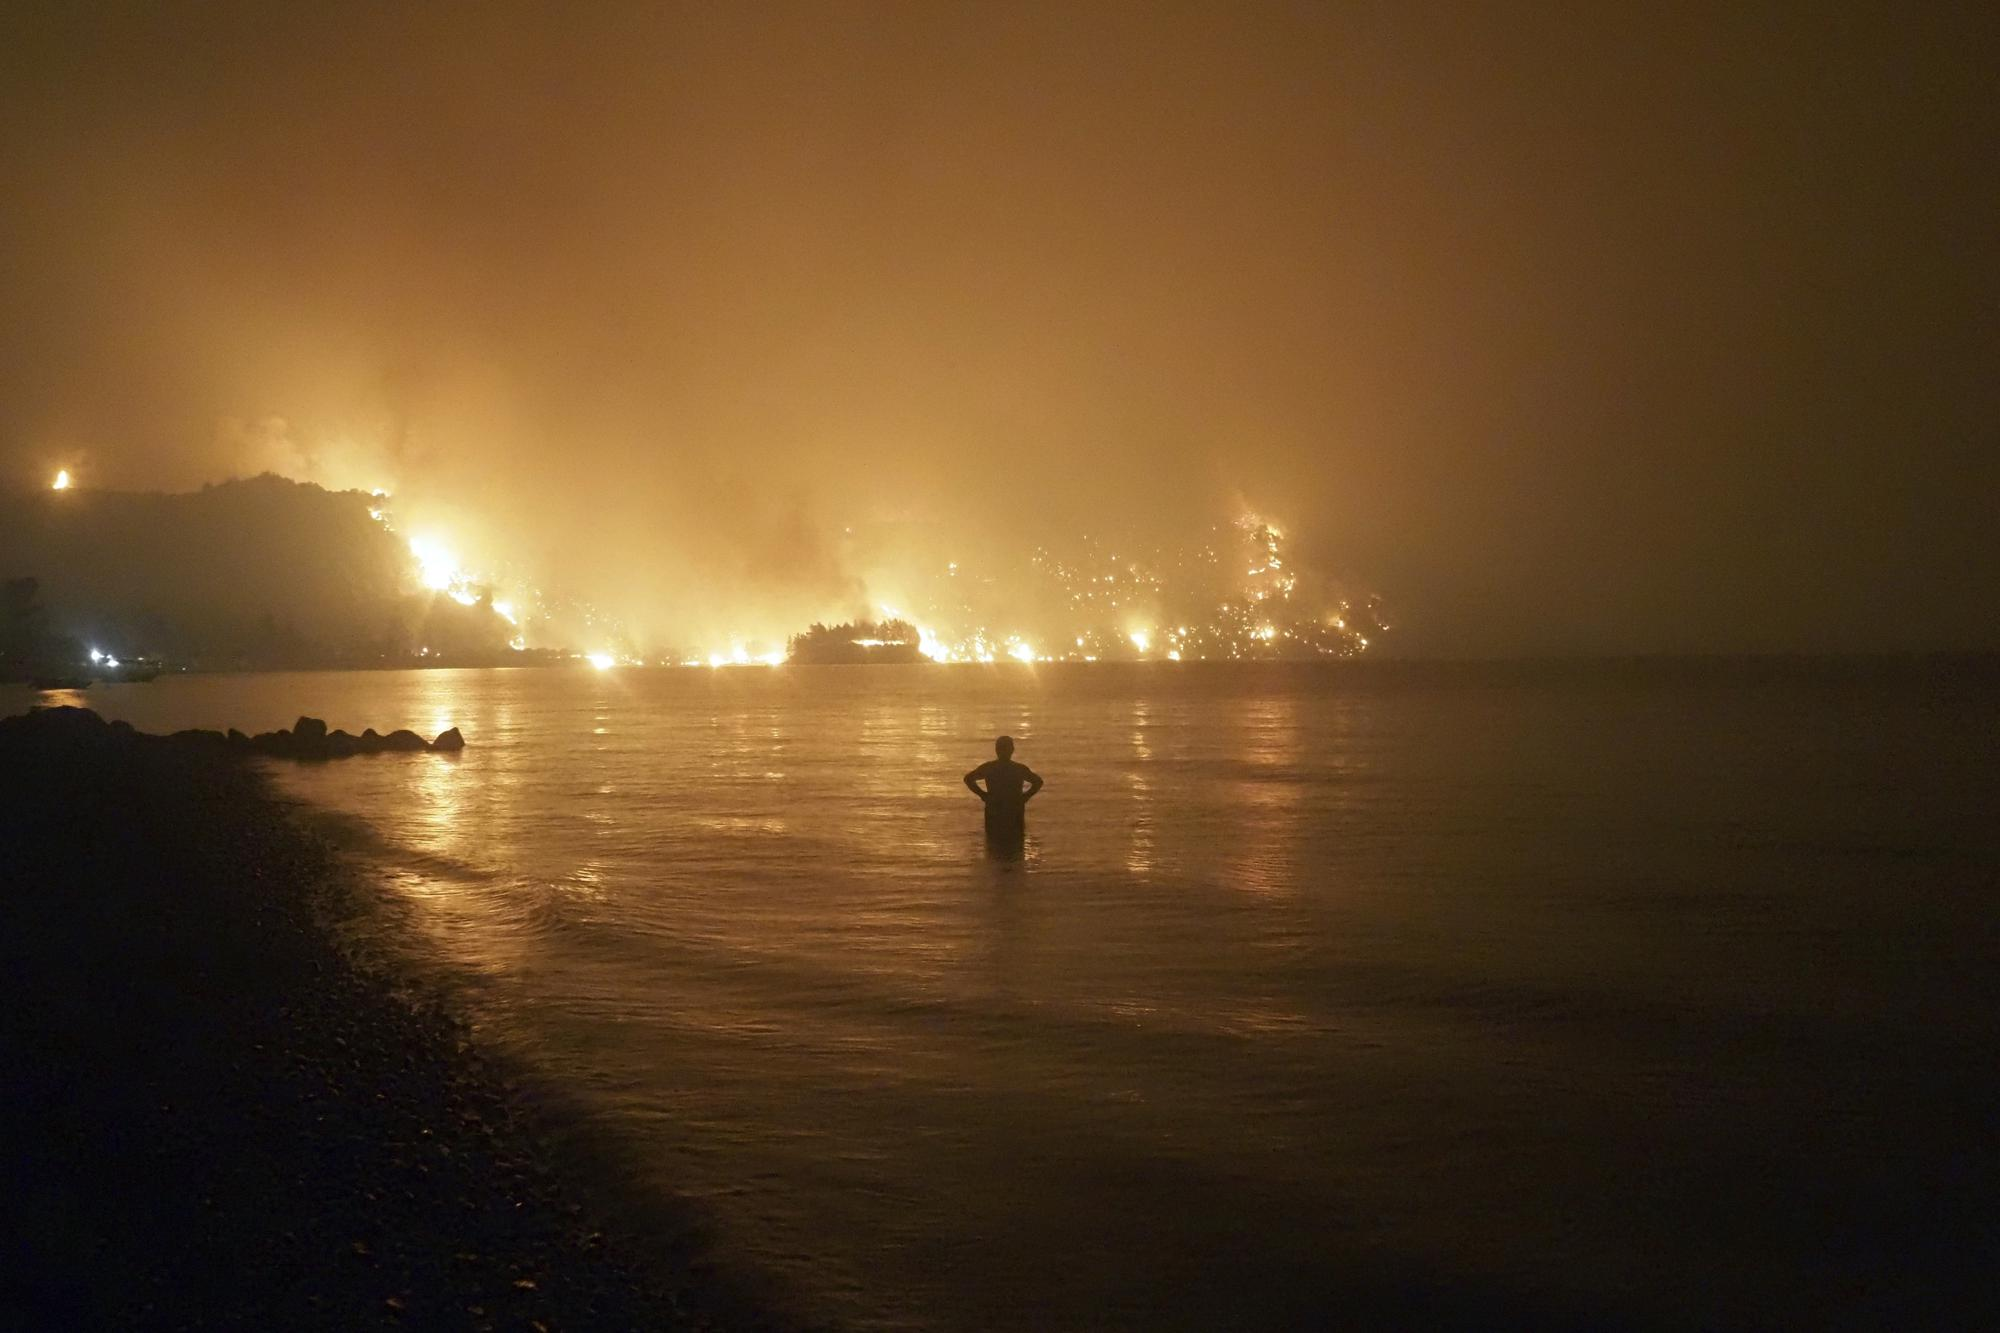 A man watches the flames as wildfire approaches Kochyli beach near the village of Limni, Greece, on the island of Evia, about 160 kilometers (100 miles) north of Athens, late Friday, Aug. 6, 2021, as wildfires raged uncontrolled through Greece and Turkey. (AP Photo/Thodoris Nikolaou)